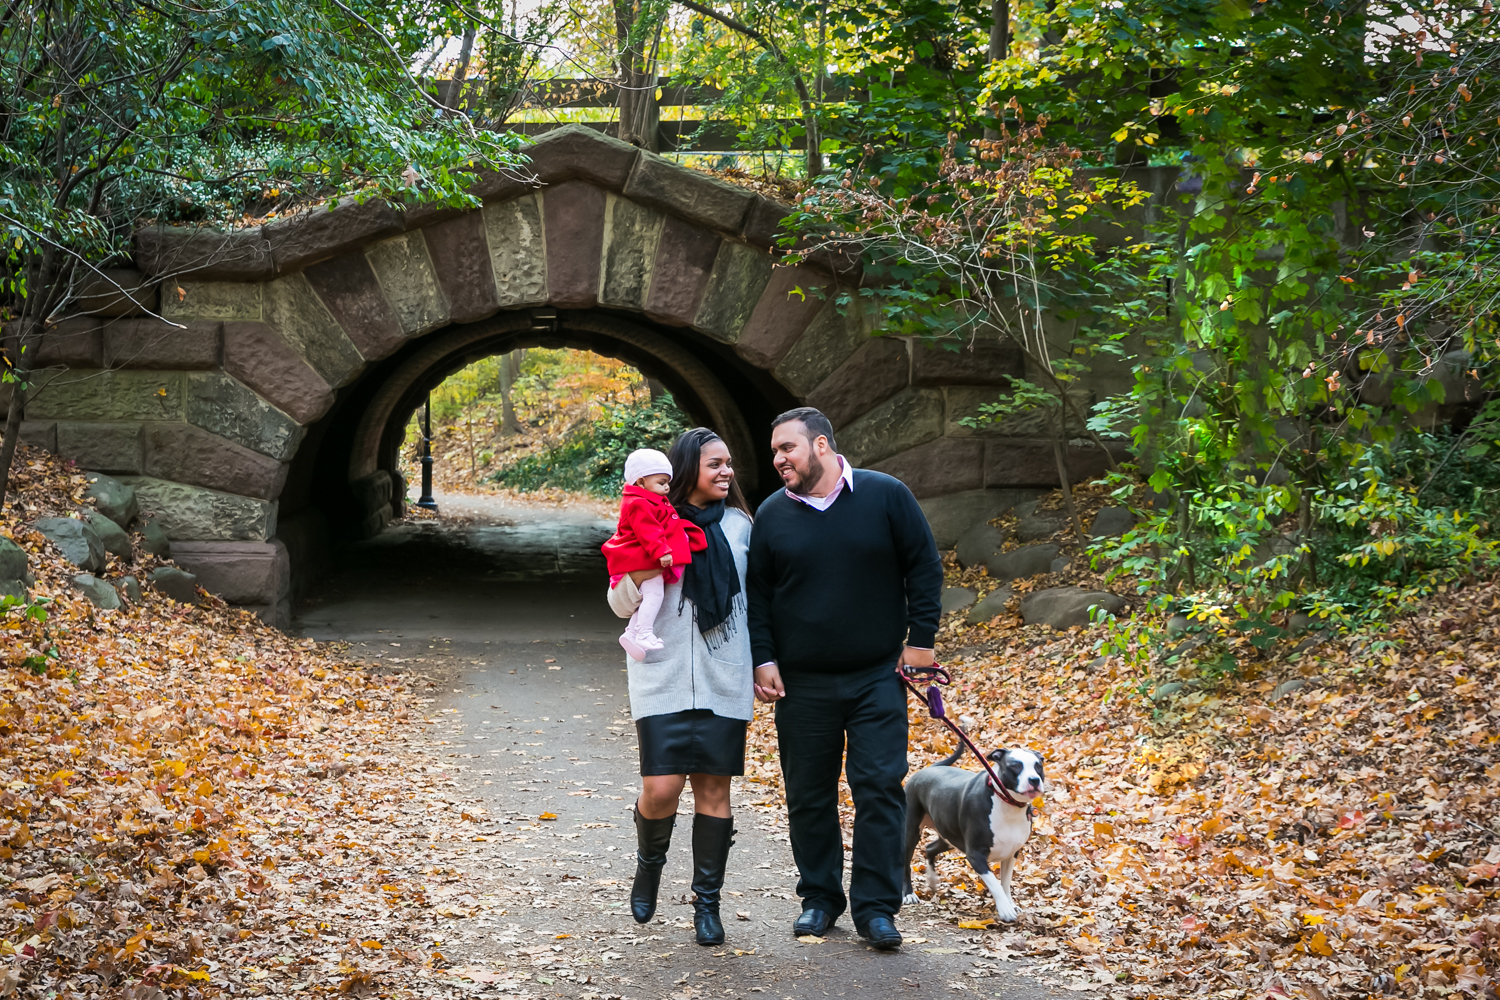 Prospect Park family portrait of family walking in front of arch in park